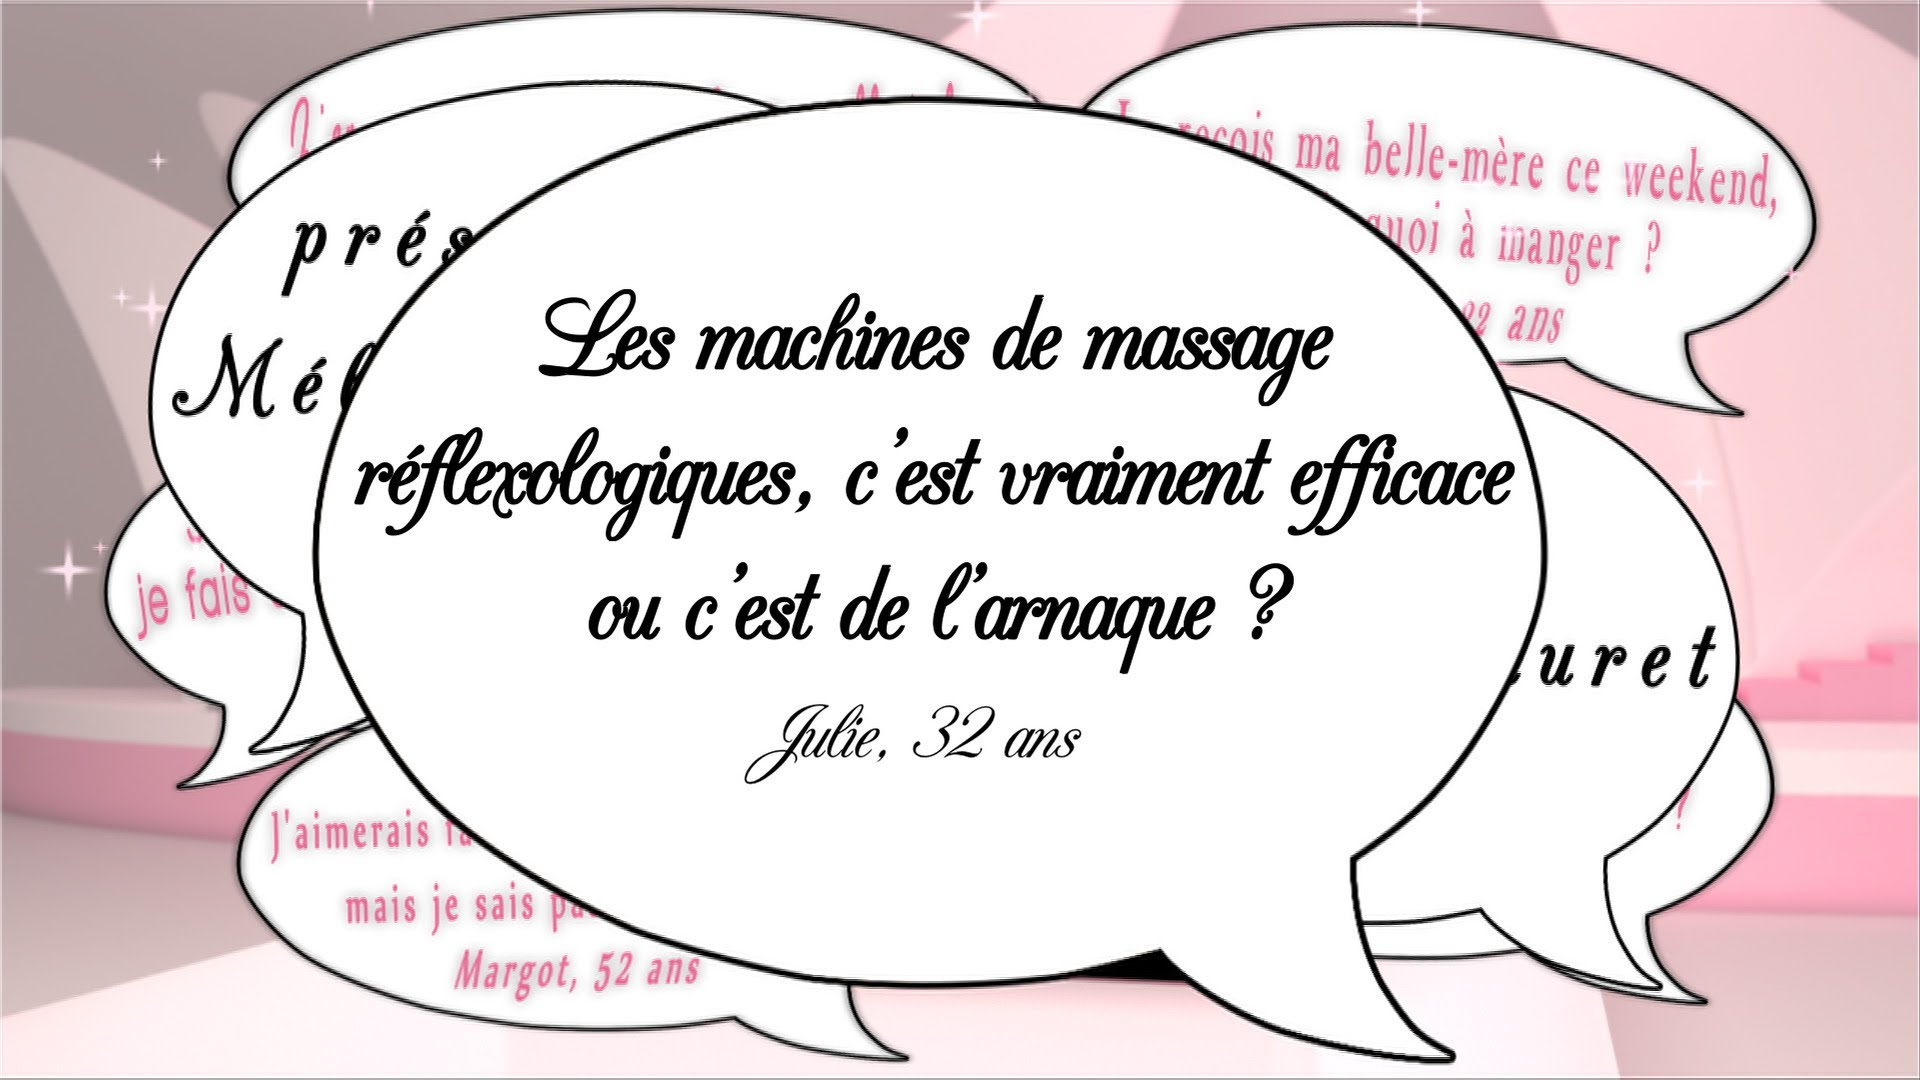 Les machines de massages